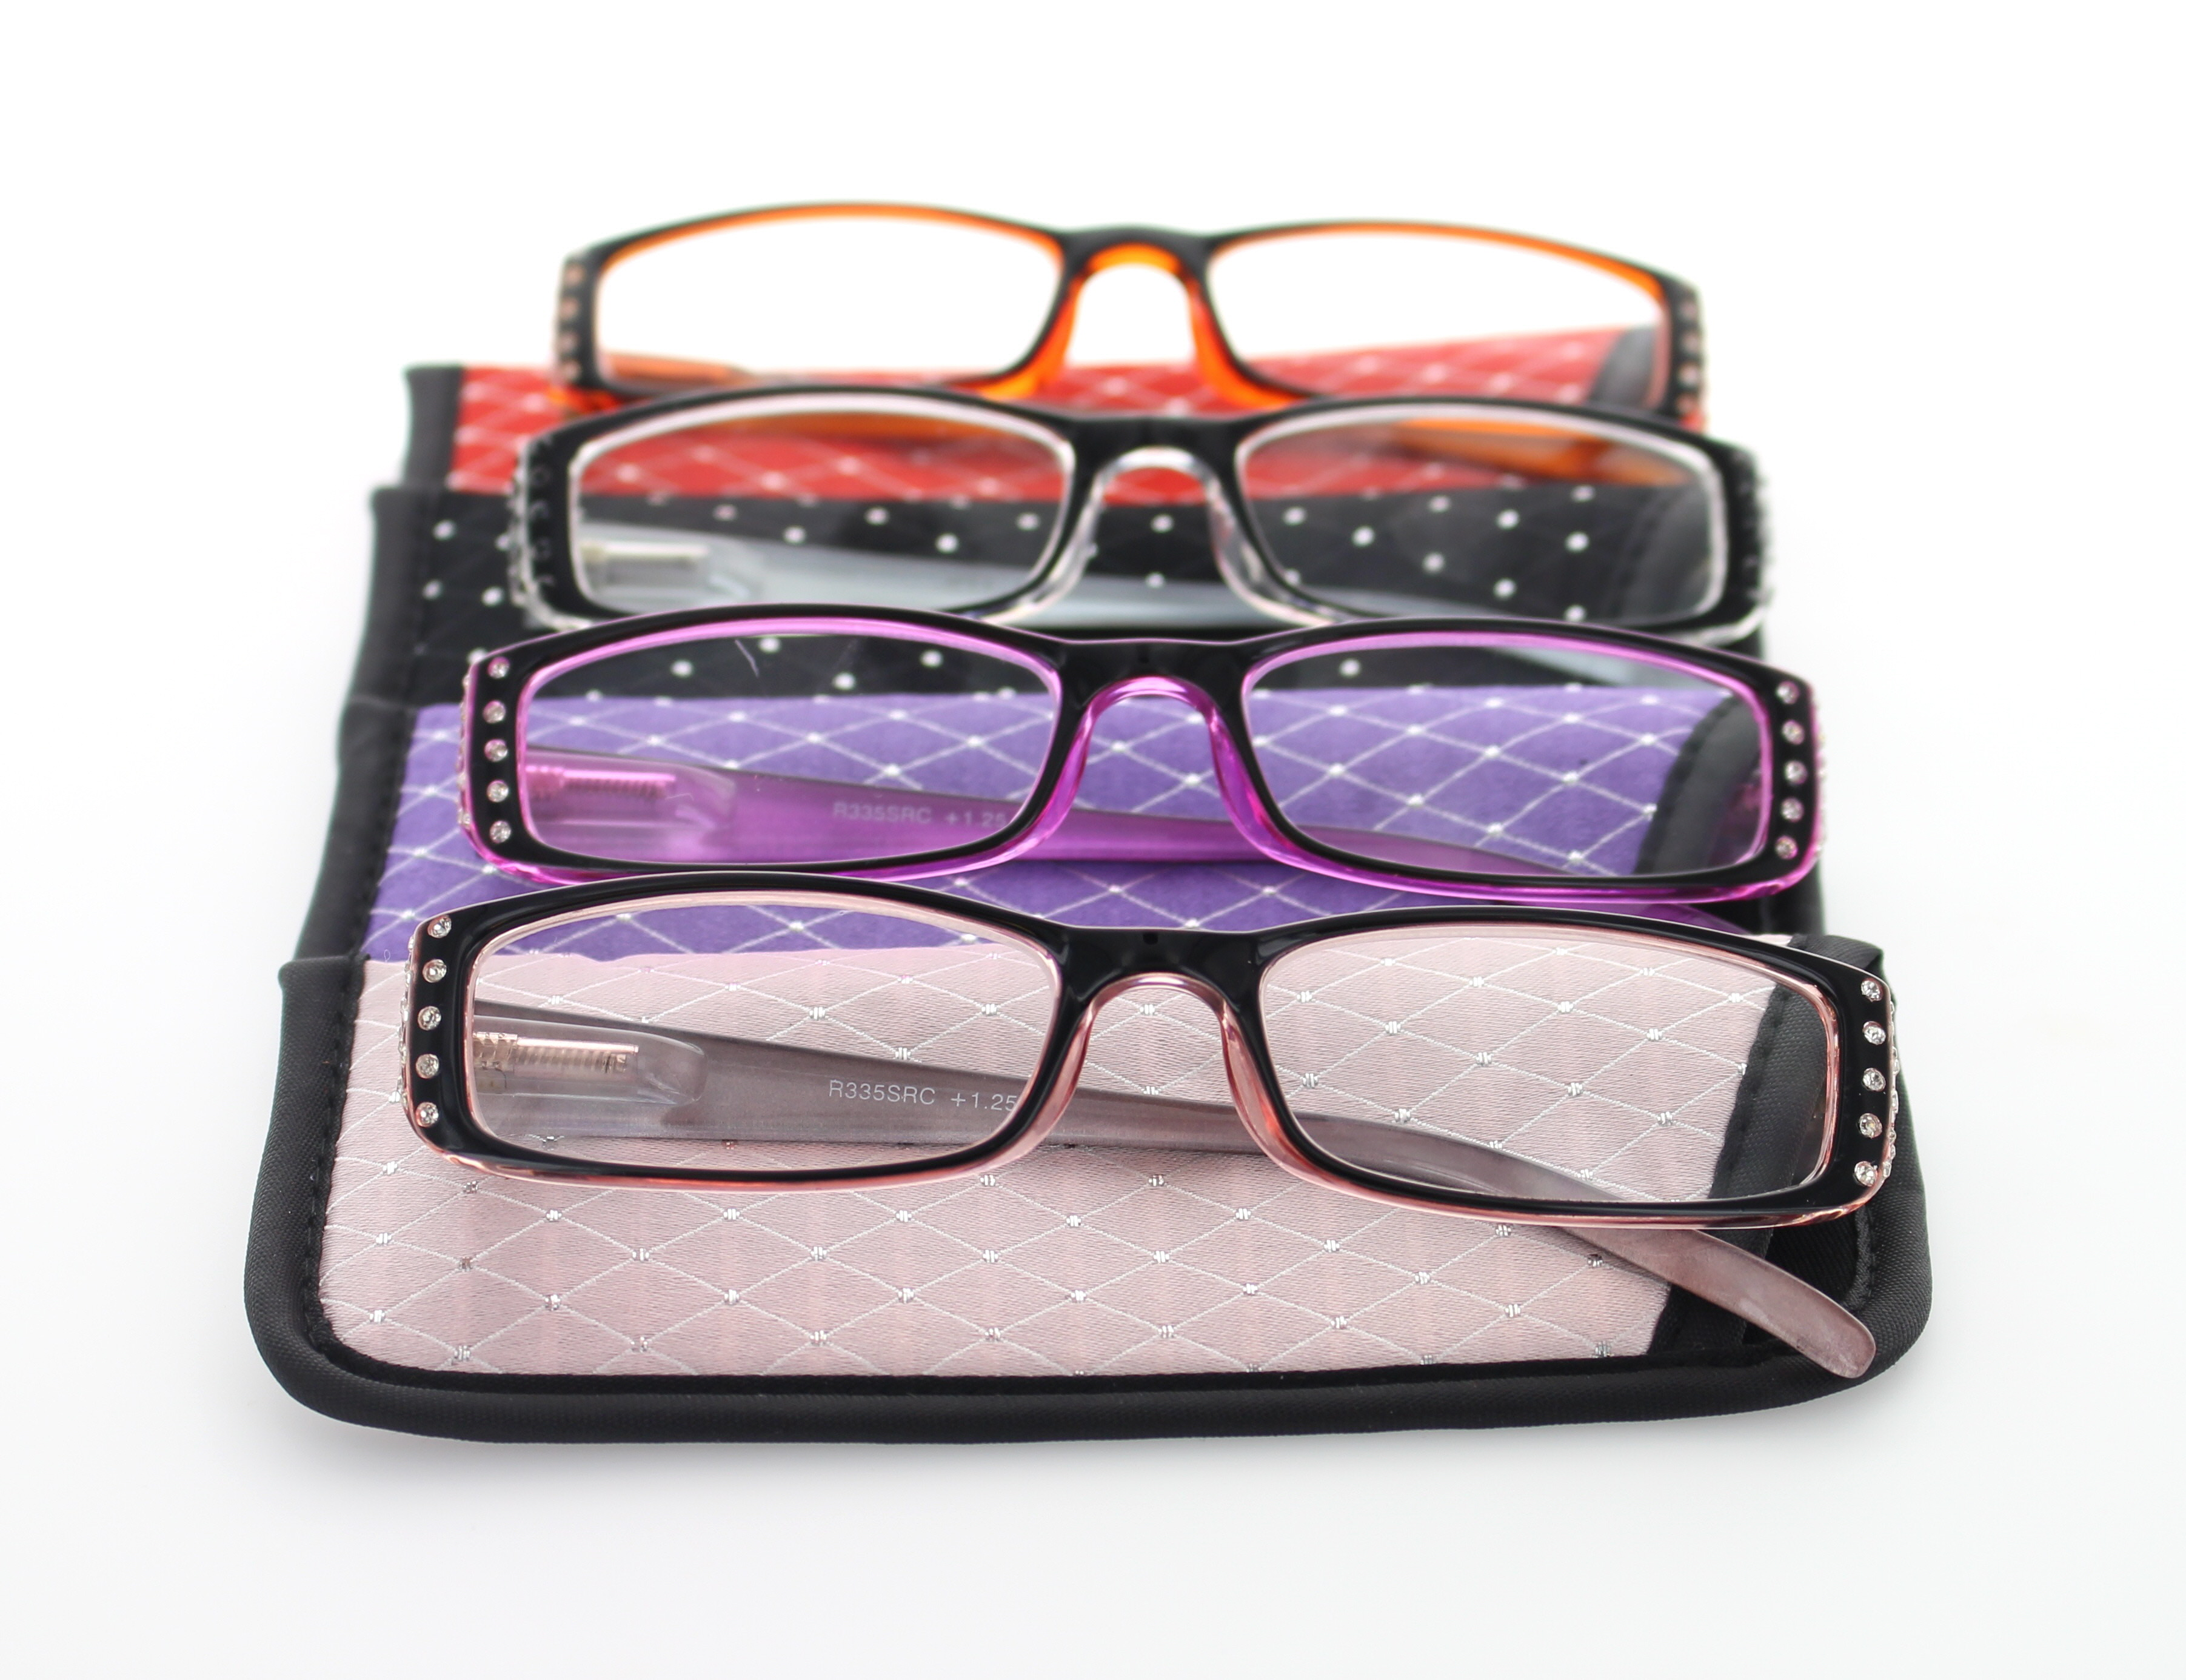 e6f9beffa29 Reading Glasses Products - Page 12 of 30 - Best of Everything ...